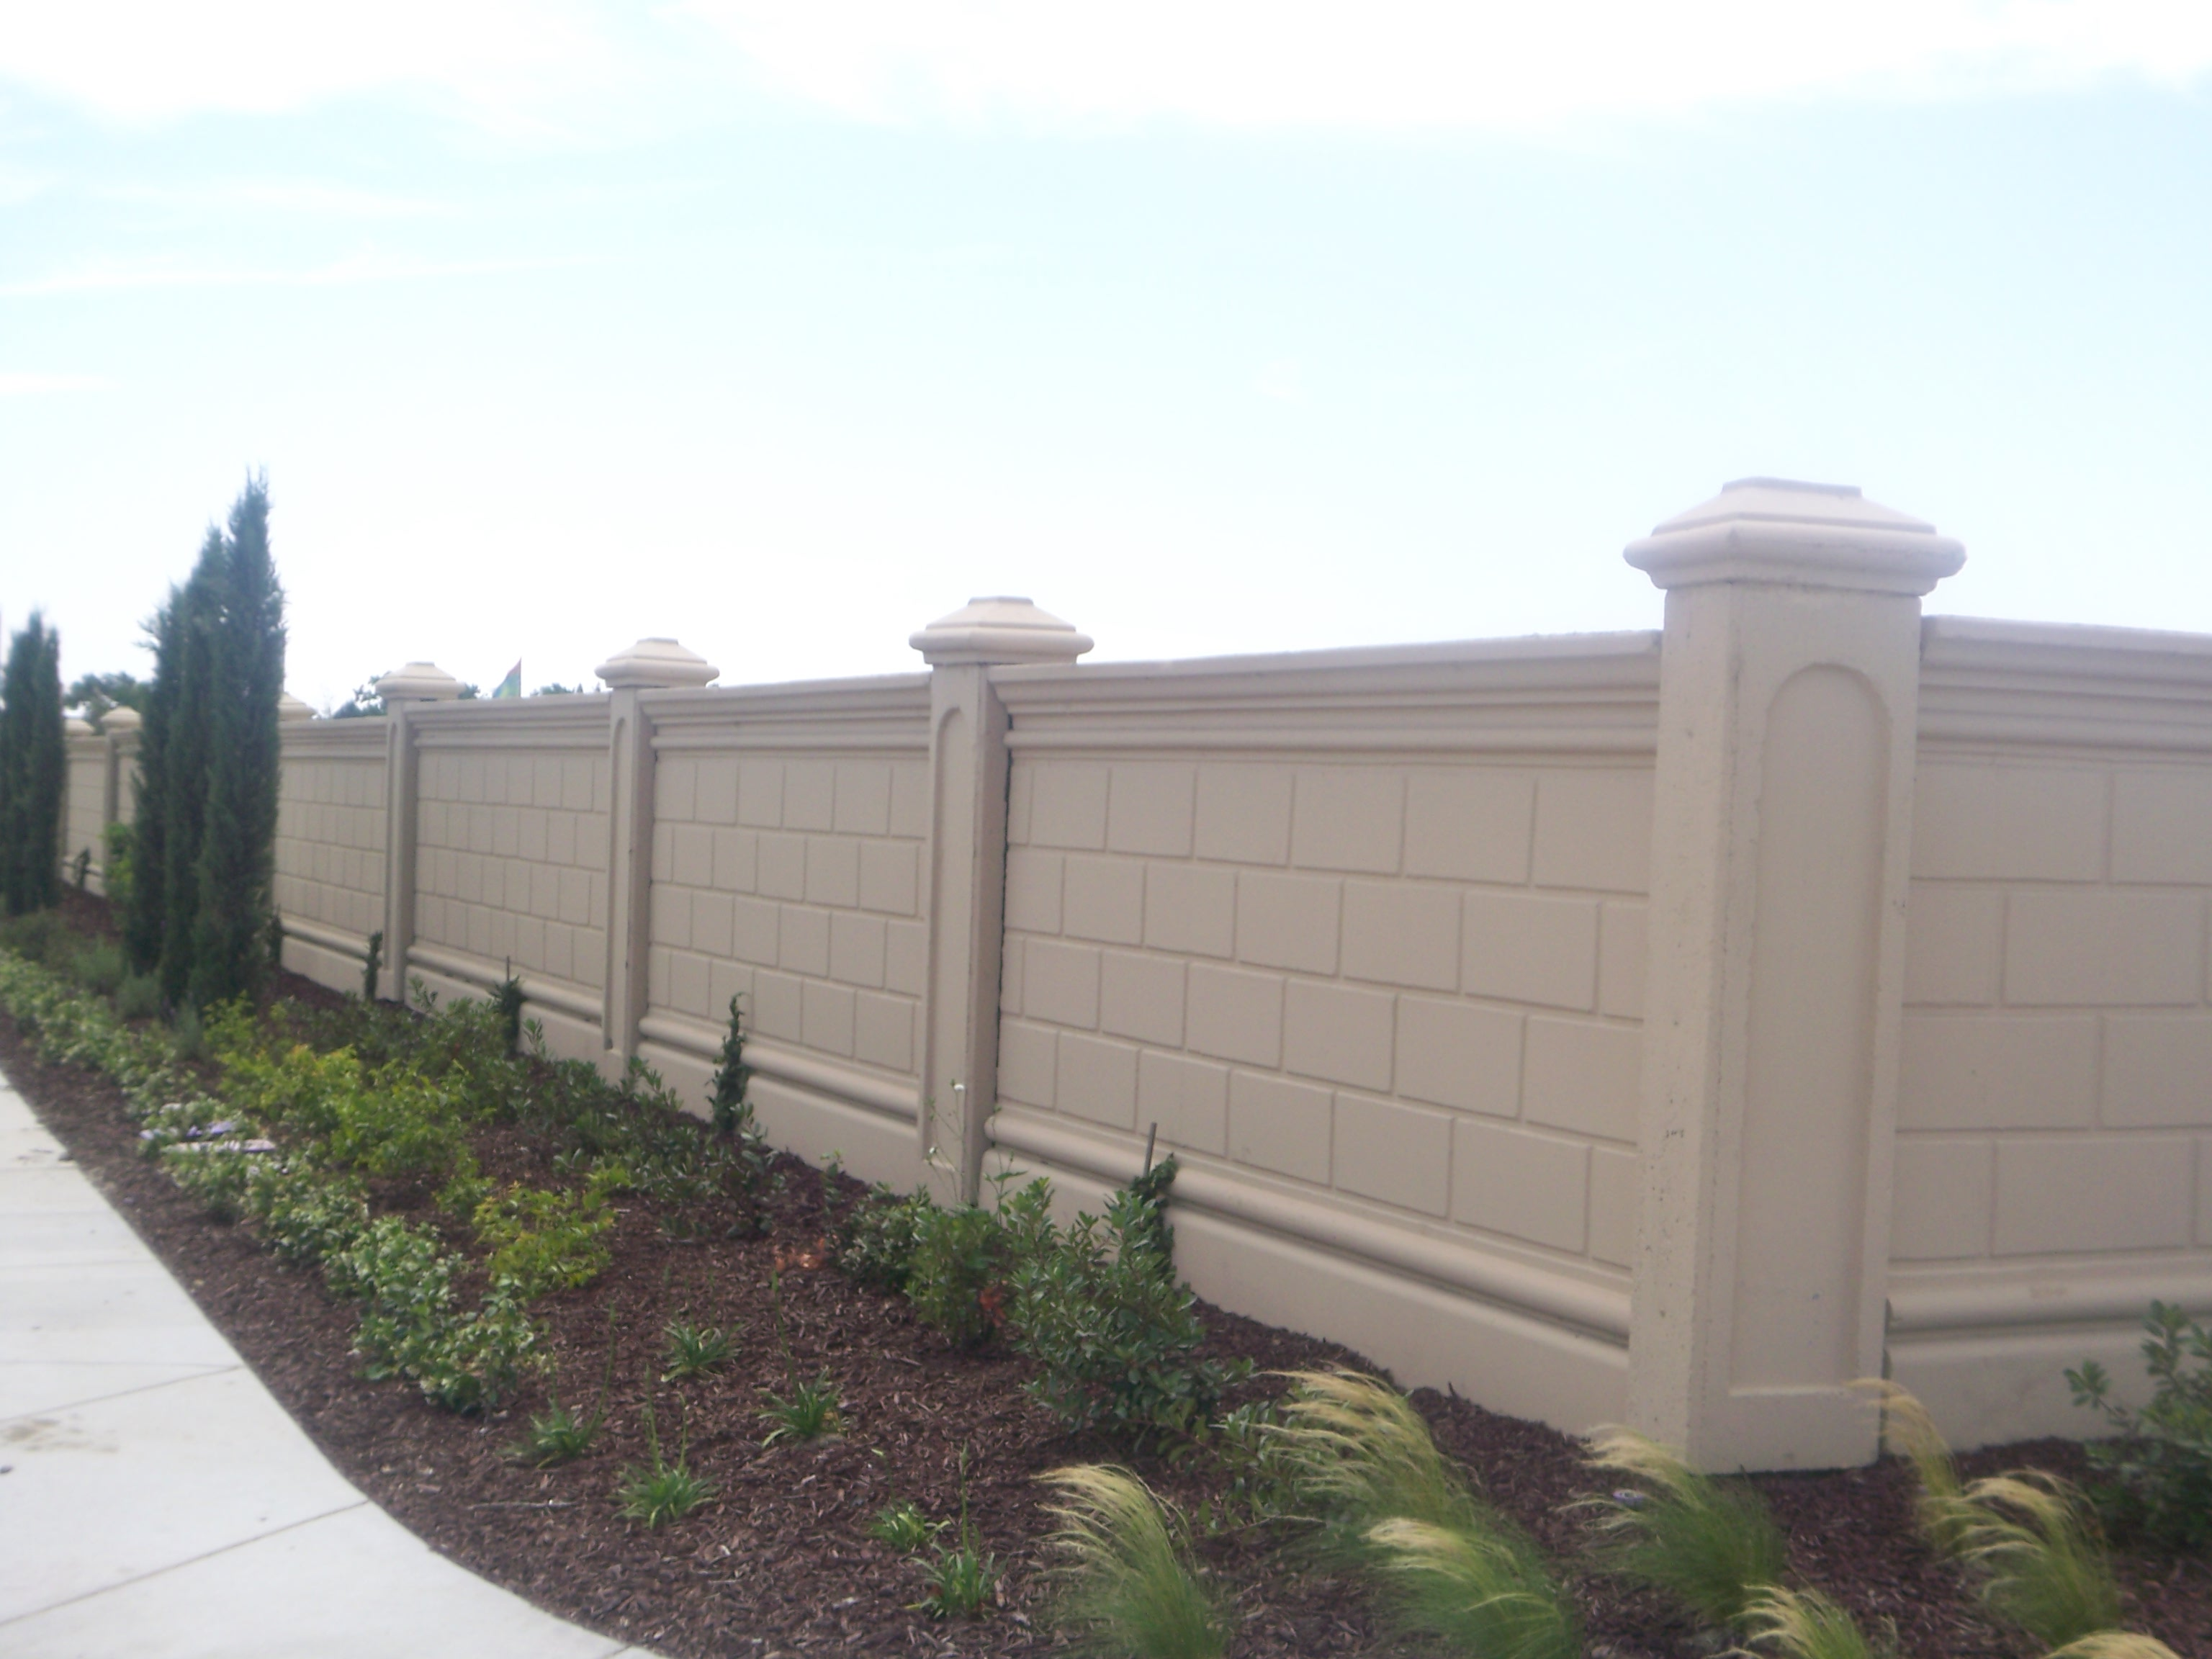 precast concrete wall concrete fence products by design industries inc 1 559 675 3535 - Concrete Walls Design